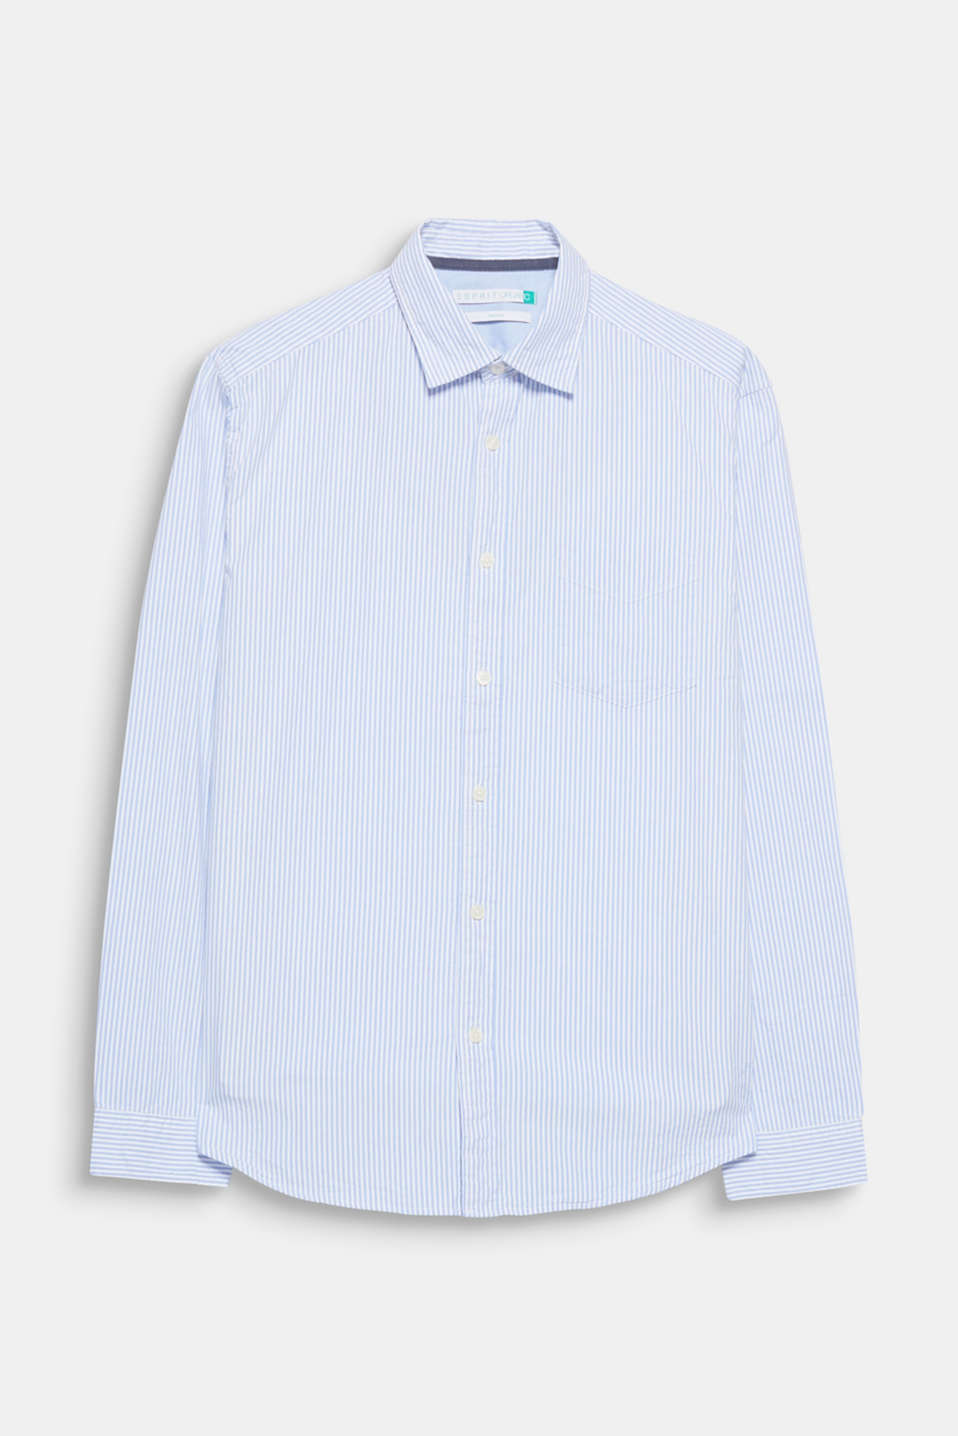 For your lightweight leisure look: timeless stripes and the lightweight Oxford fabric make this shirt a favourite.